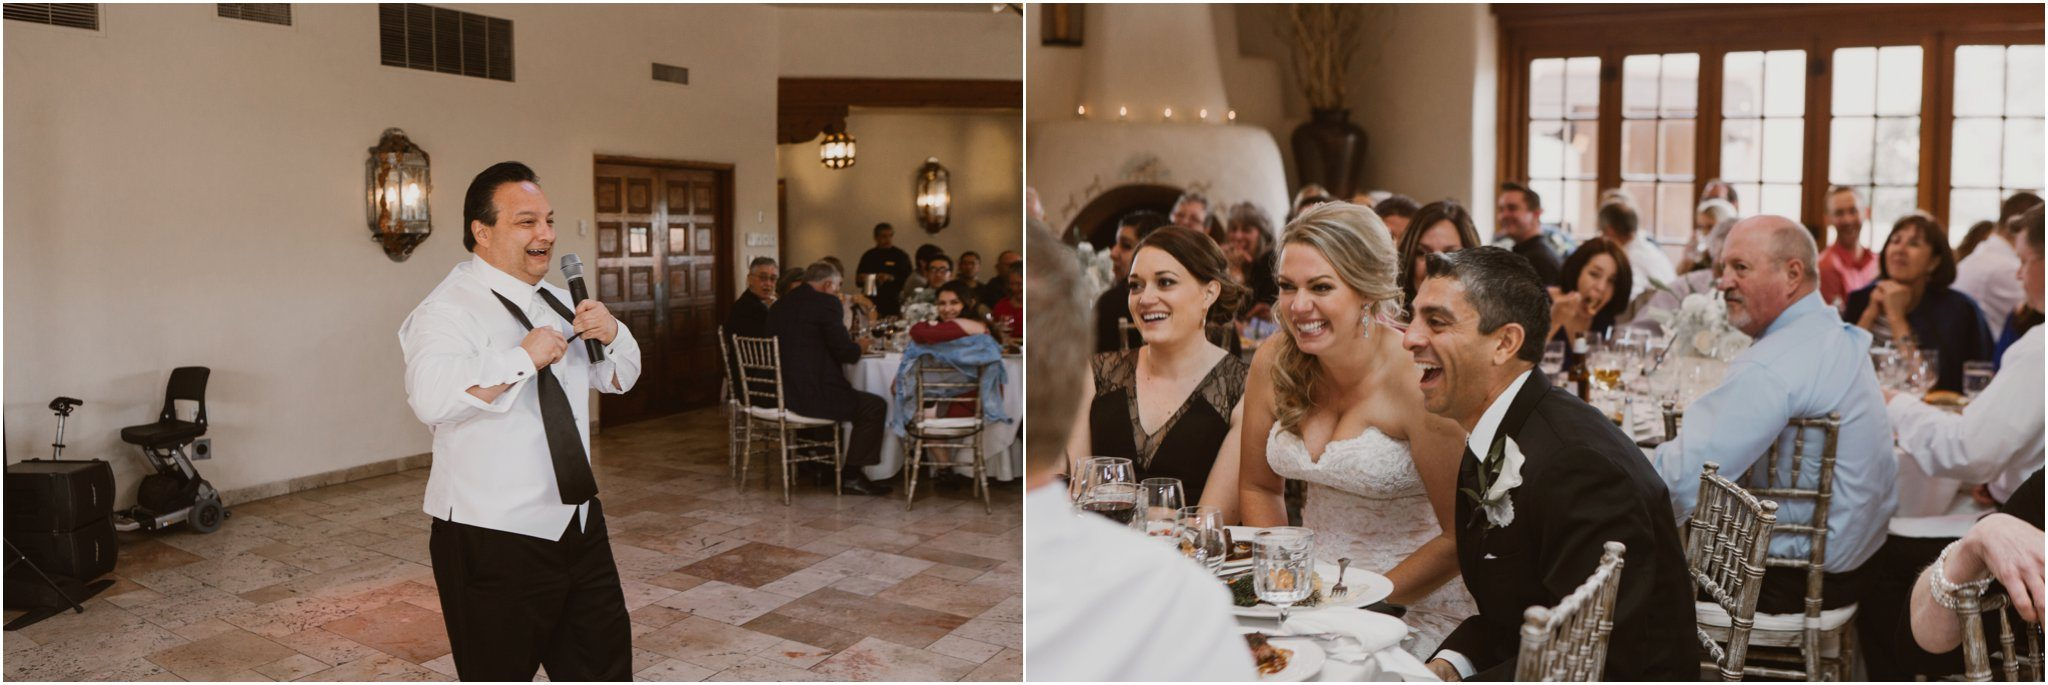 0032Albuquerque _ Santa Fe _ Wedding Photographers _ New Mexico Wedding Photography